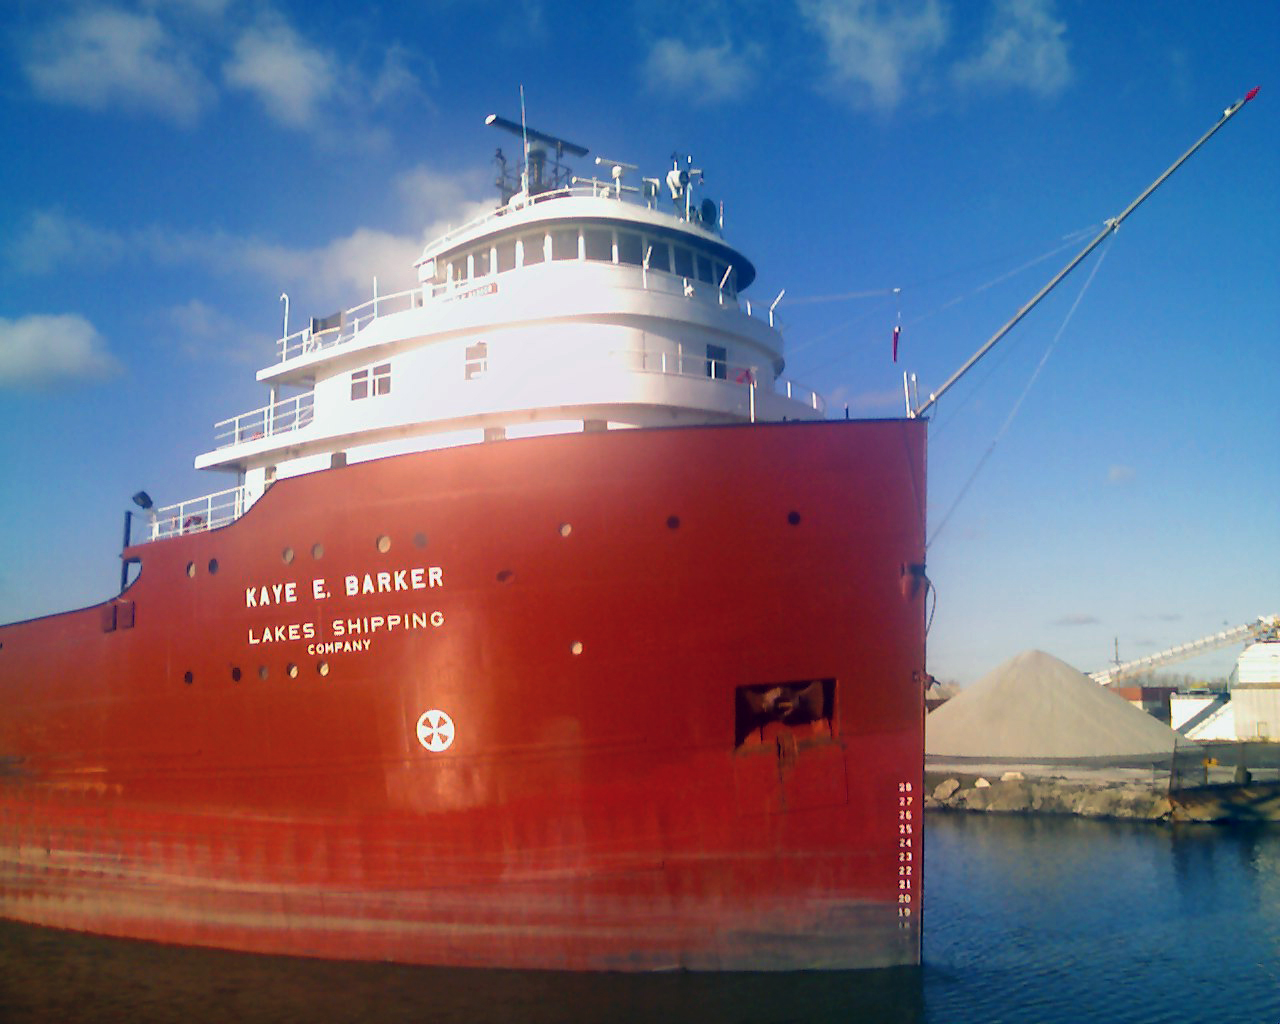 Vessel KAYE E. BARKER underway, Rouge River at West Jefferson Aveneue bridge.